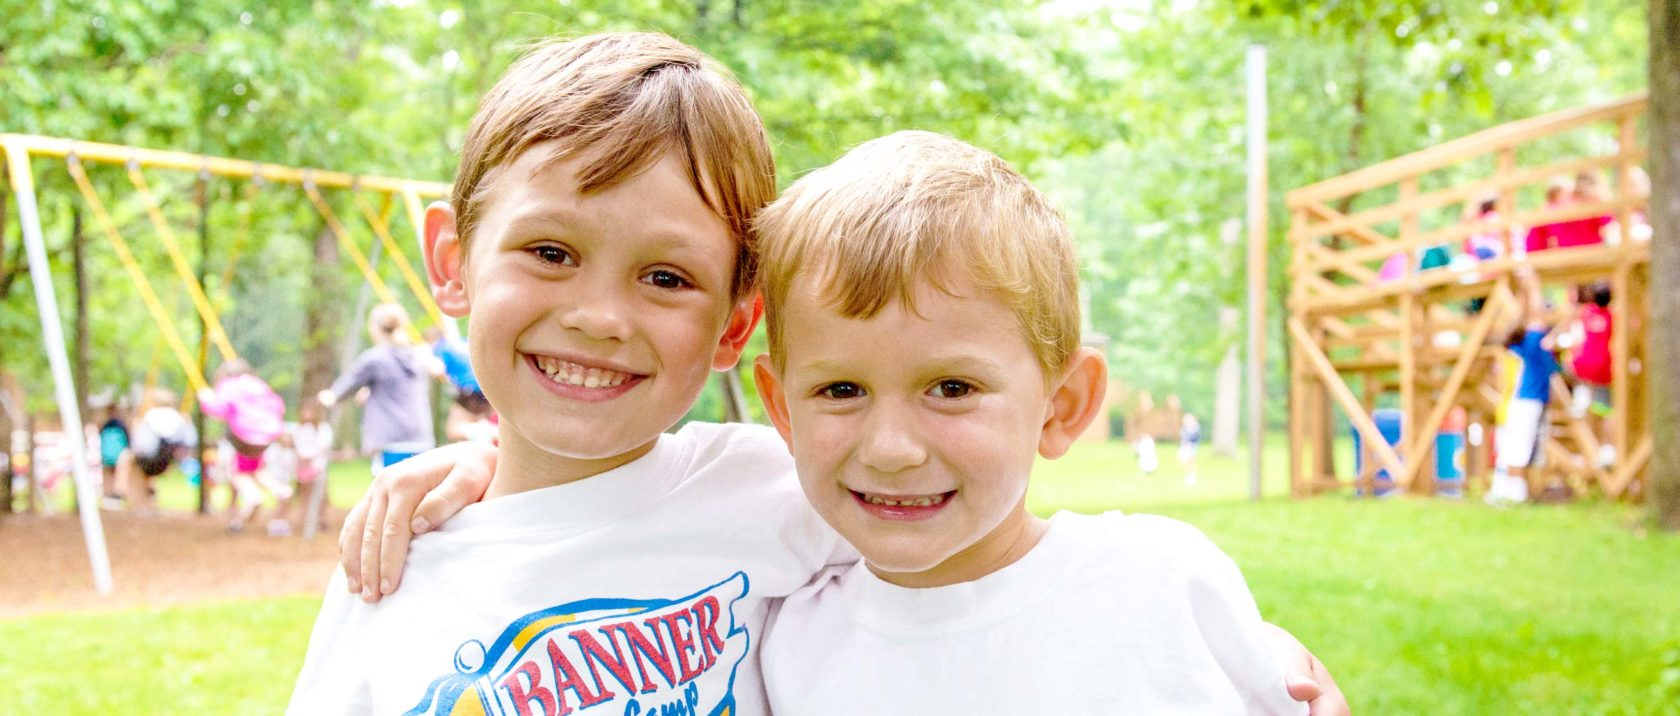 Two boy campers with arms around each other smiling